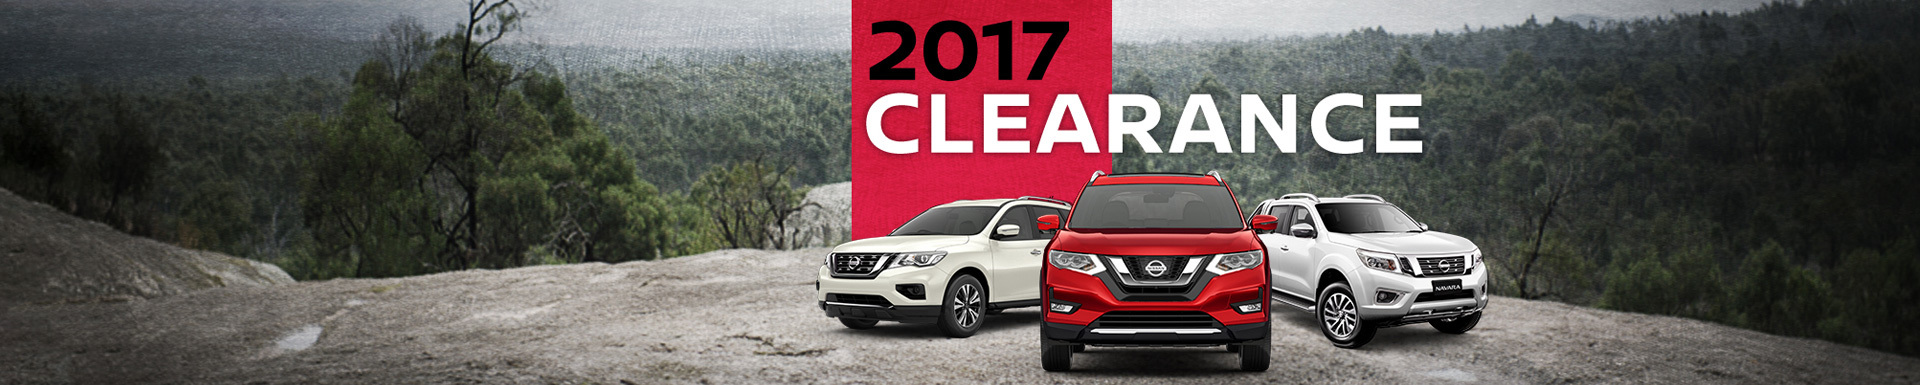 Nissan - National Offer - December- 2017 Clearance